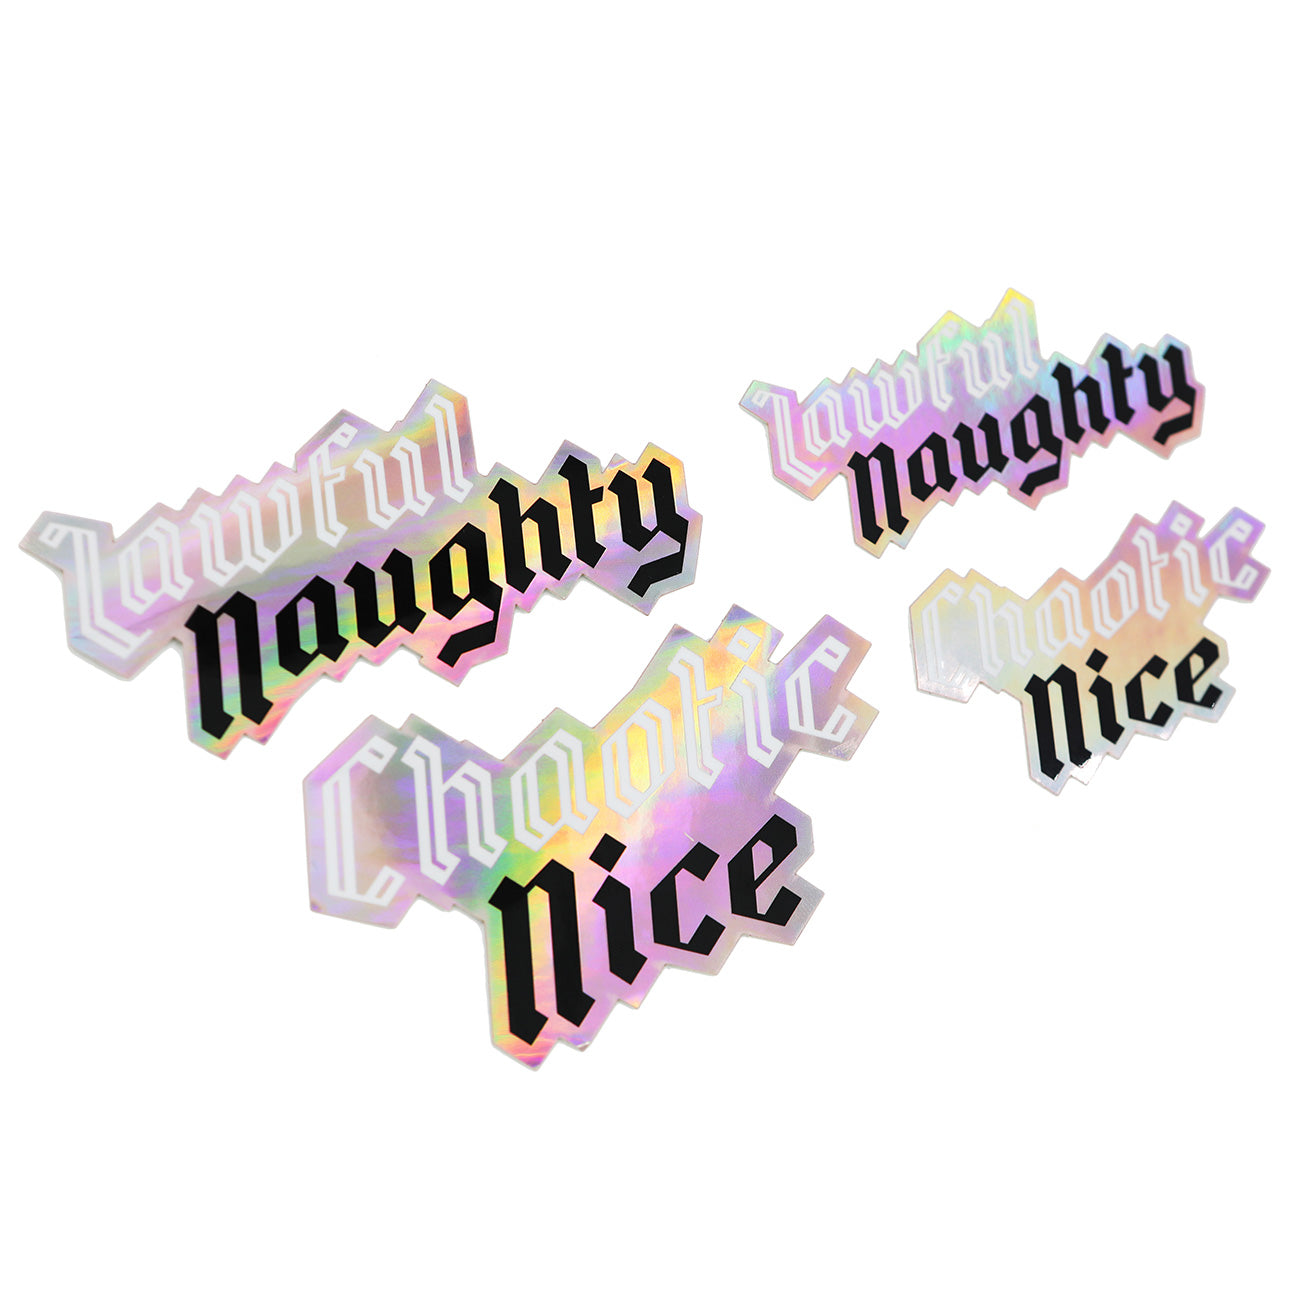 Chaotic Nice & Lawful Naughty Sticker Set - Free with $35 Purchase